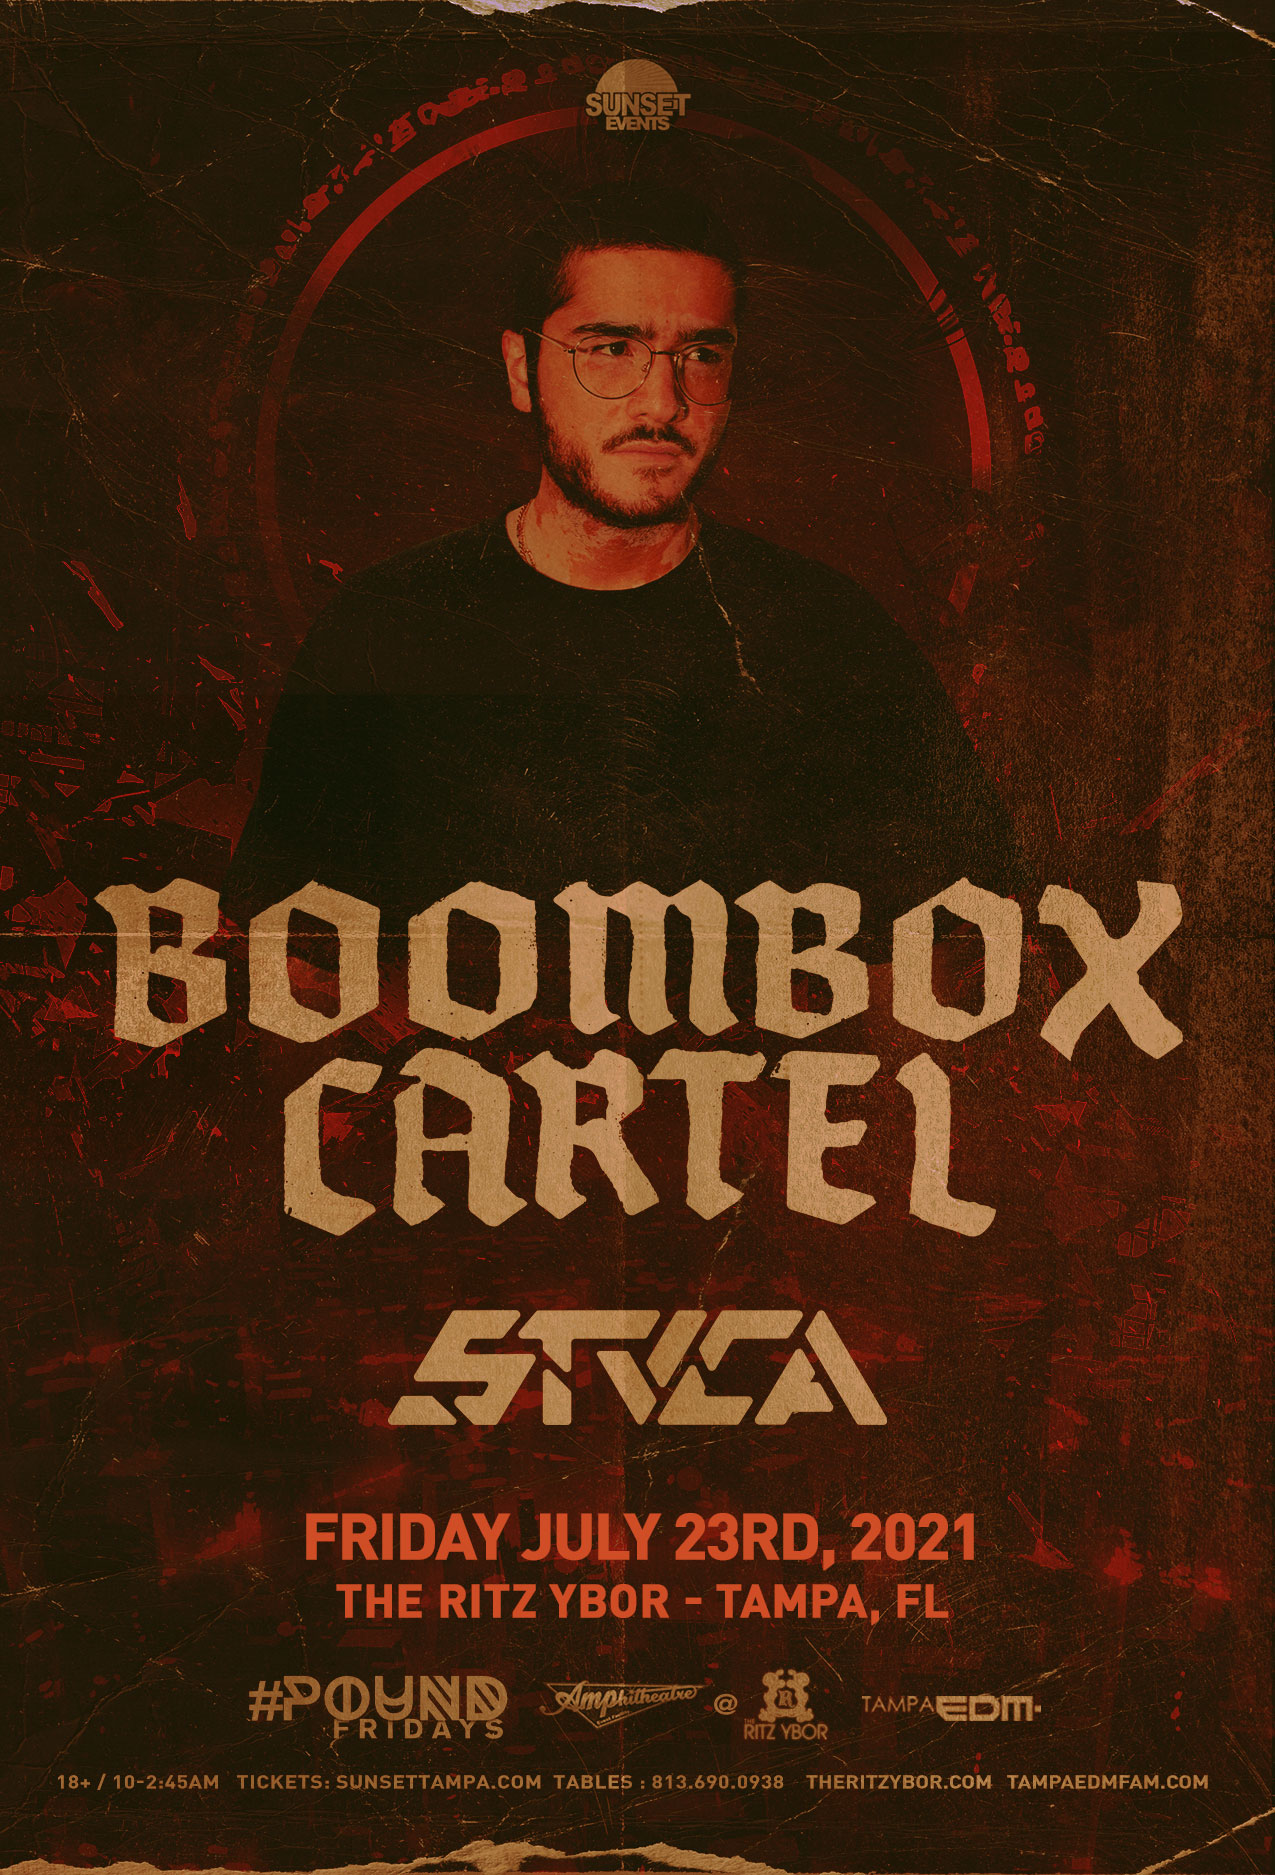 Boombox Cartel for #POUND Fridays at The RITZ Ybor – 7/23/2021